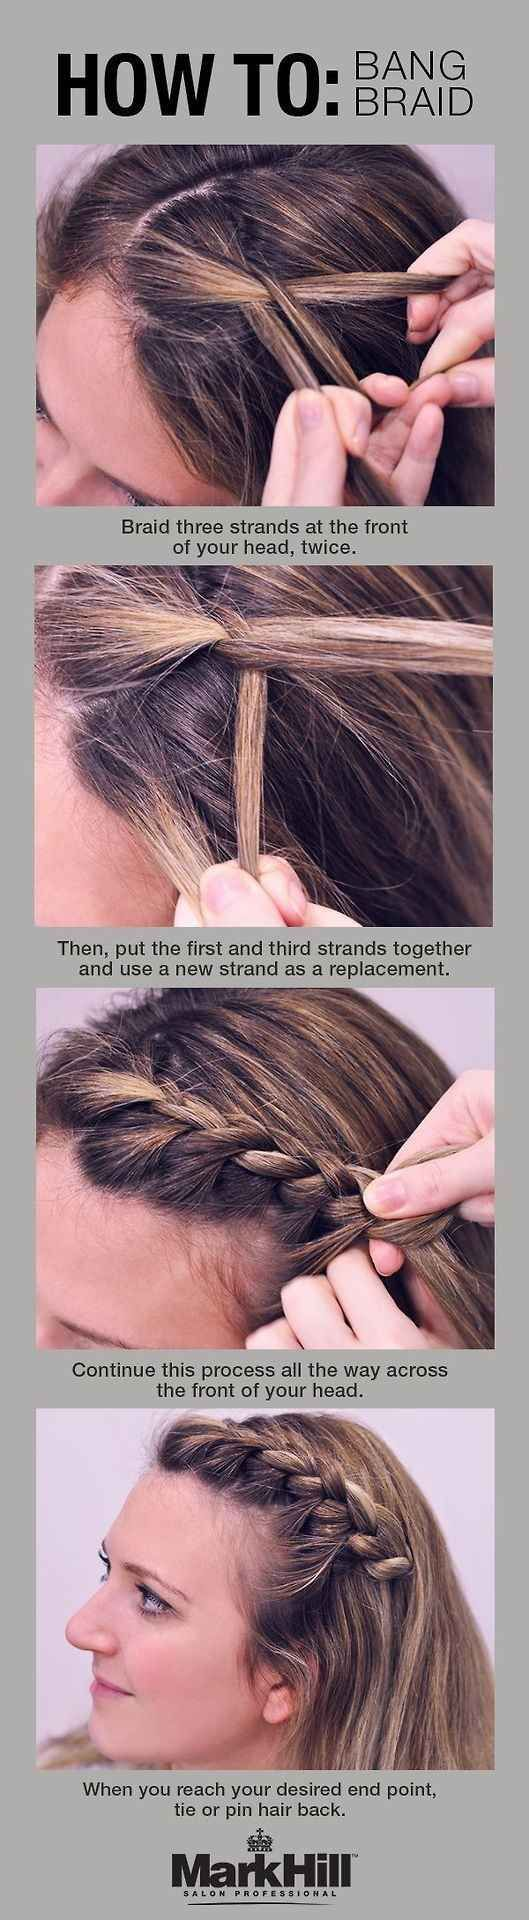 Super 1000 Ideas About Gym Hairstyles On Pinterest Workout Hairstyles Short Hairstyles For Black Women Fulllsitofus